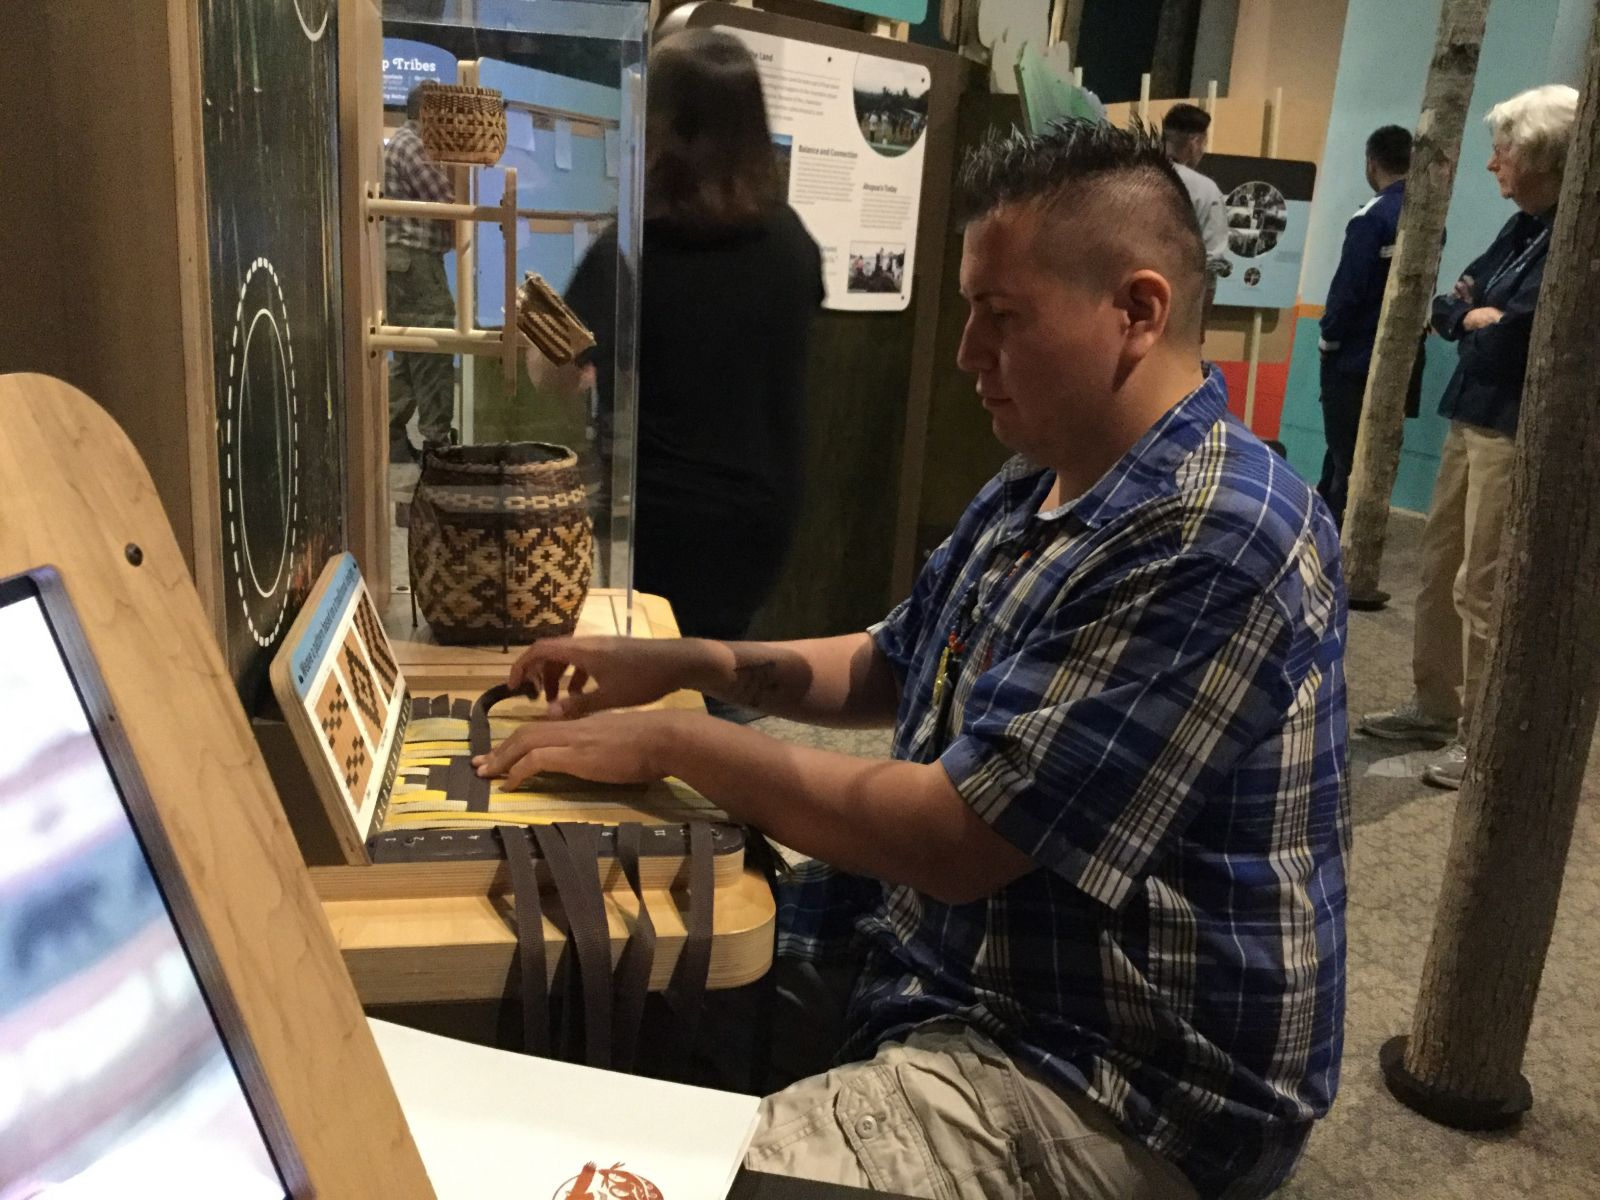 At this weaving station, follow the patterns to better understand the arts and crafts of the Mohawk.